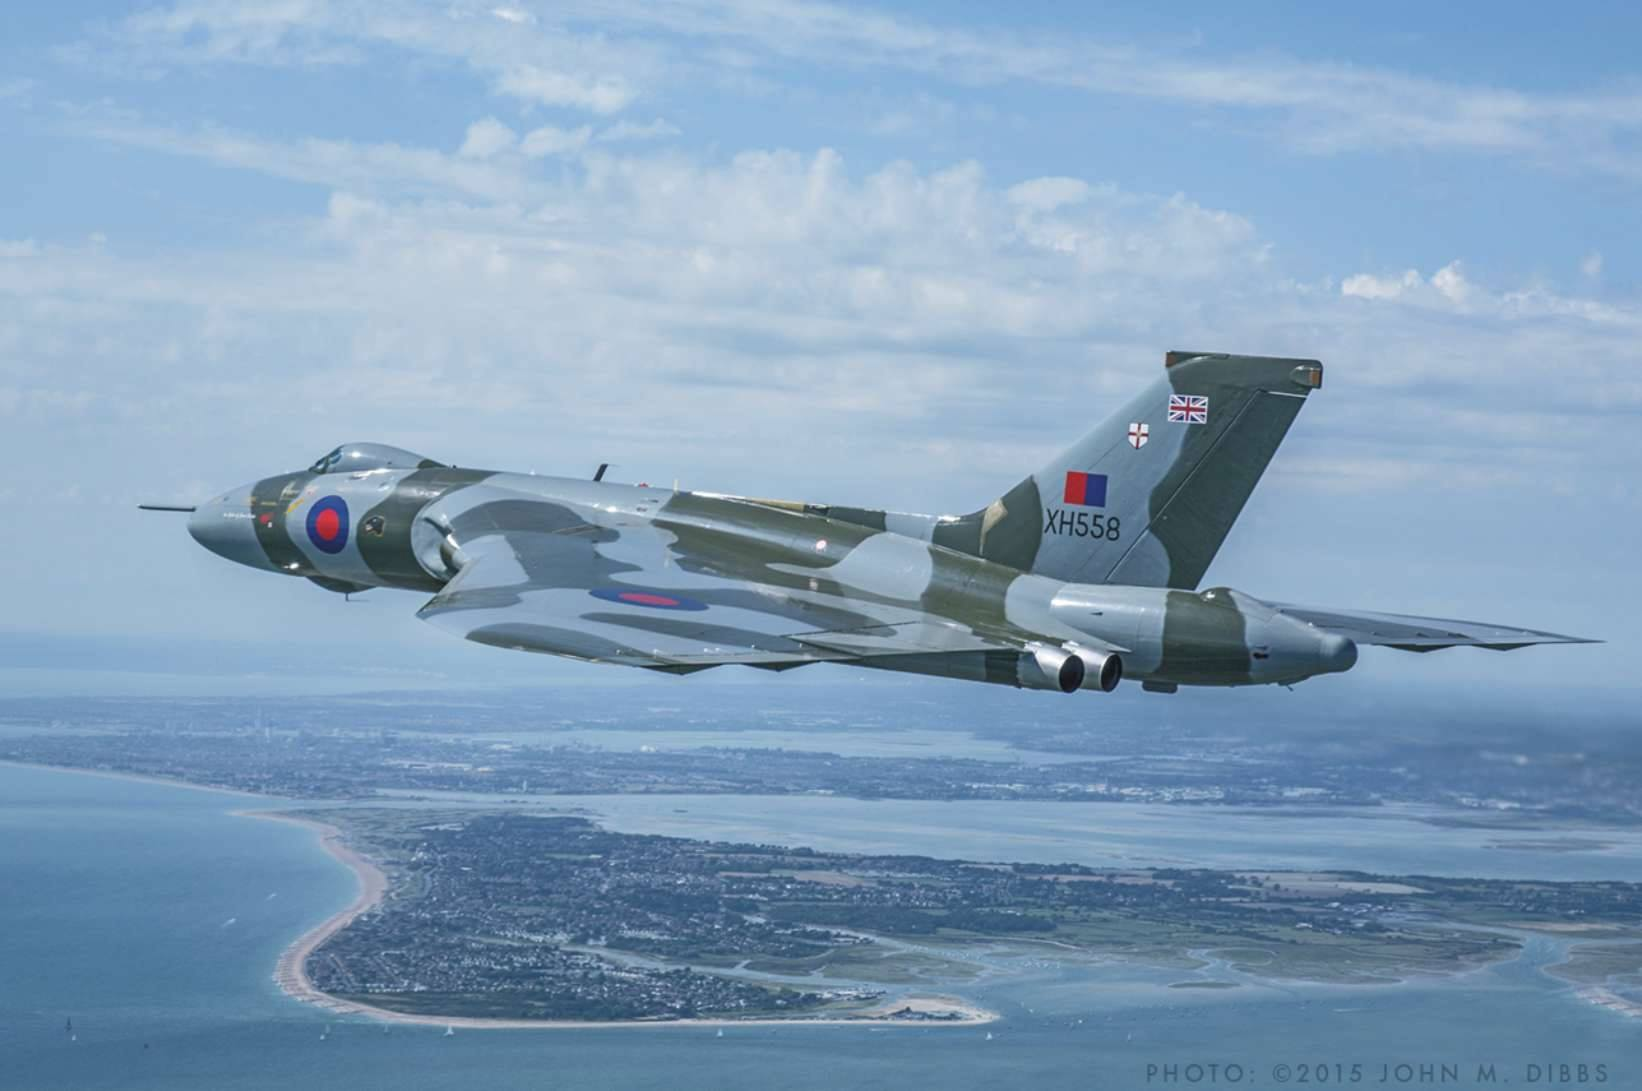 John Dibbs captured Vulcan XH558 over the Solent back in August during a photo mission for an upcoming book.